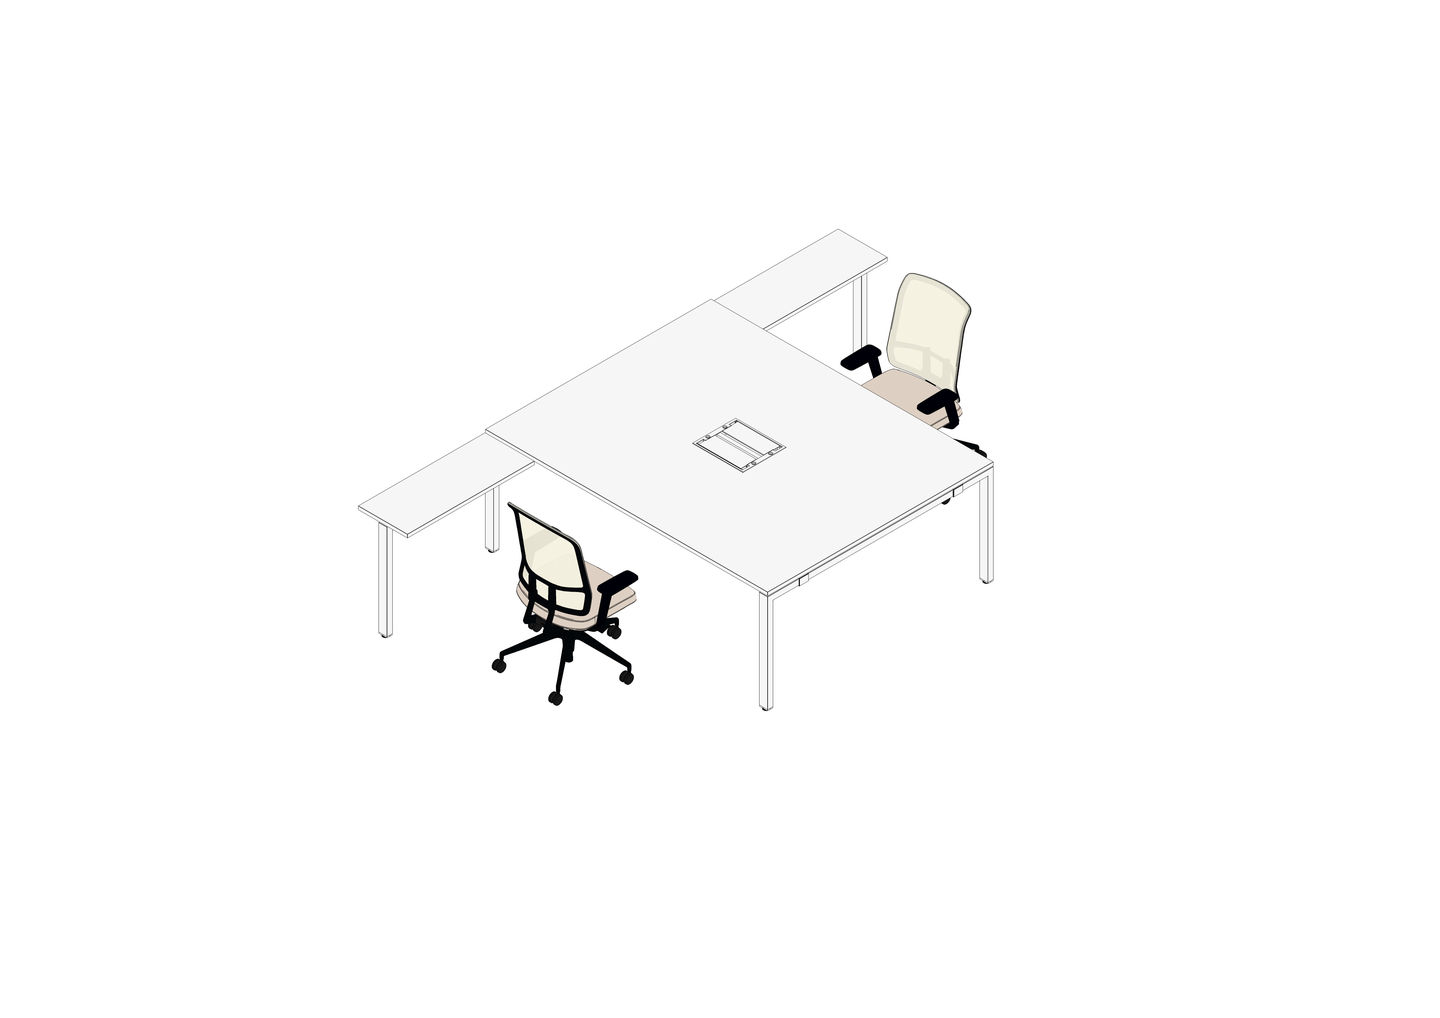 WorKit 200 x 160 with Return Table 80 x 40, AM Chair